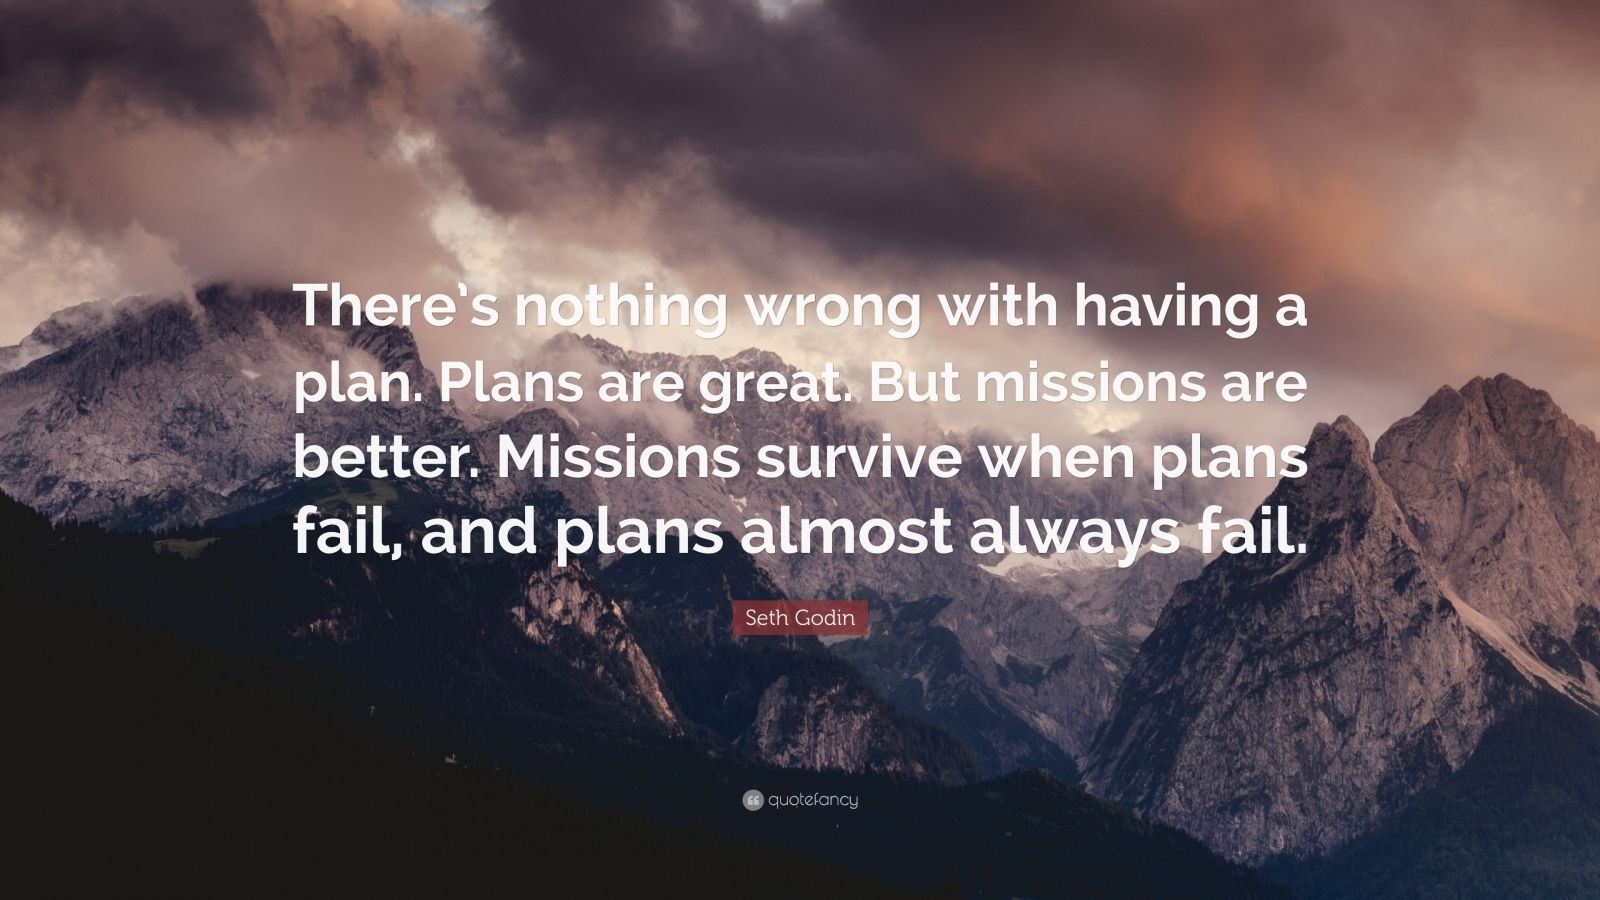 """Seth Godin Quote: """"There's nothing wrong with having a plan. Plans are great. But missions are better. Missions survive when plans fail, and plans almost always fail."""""""